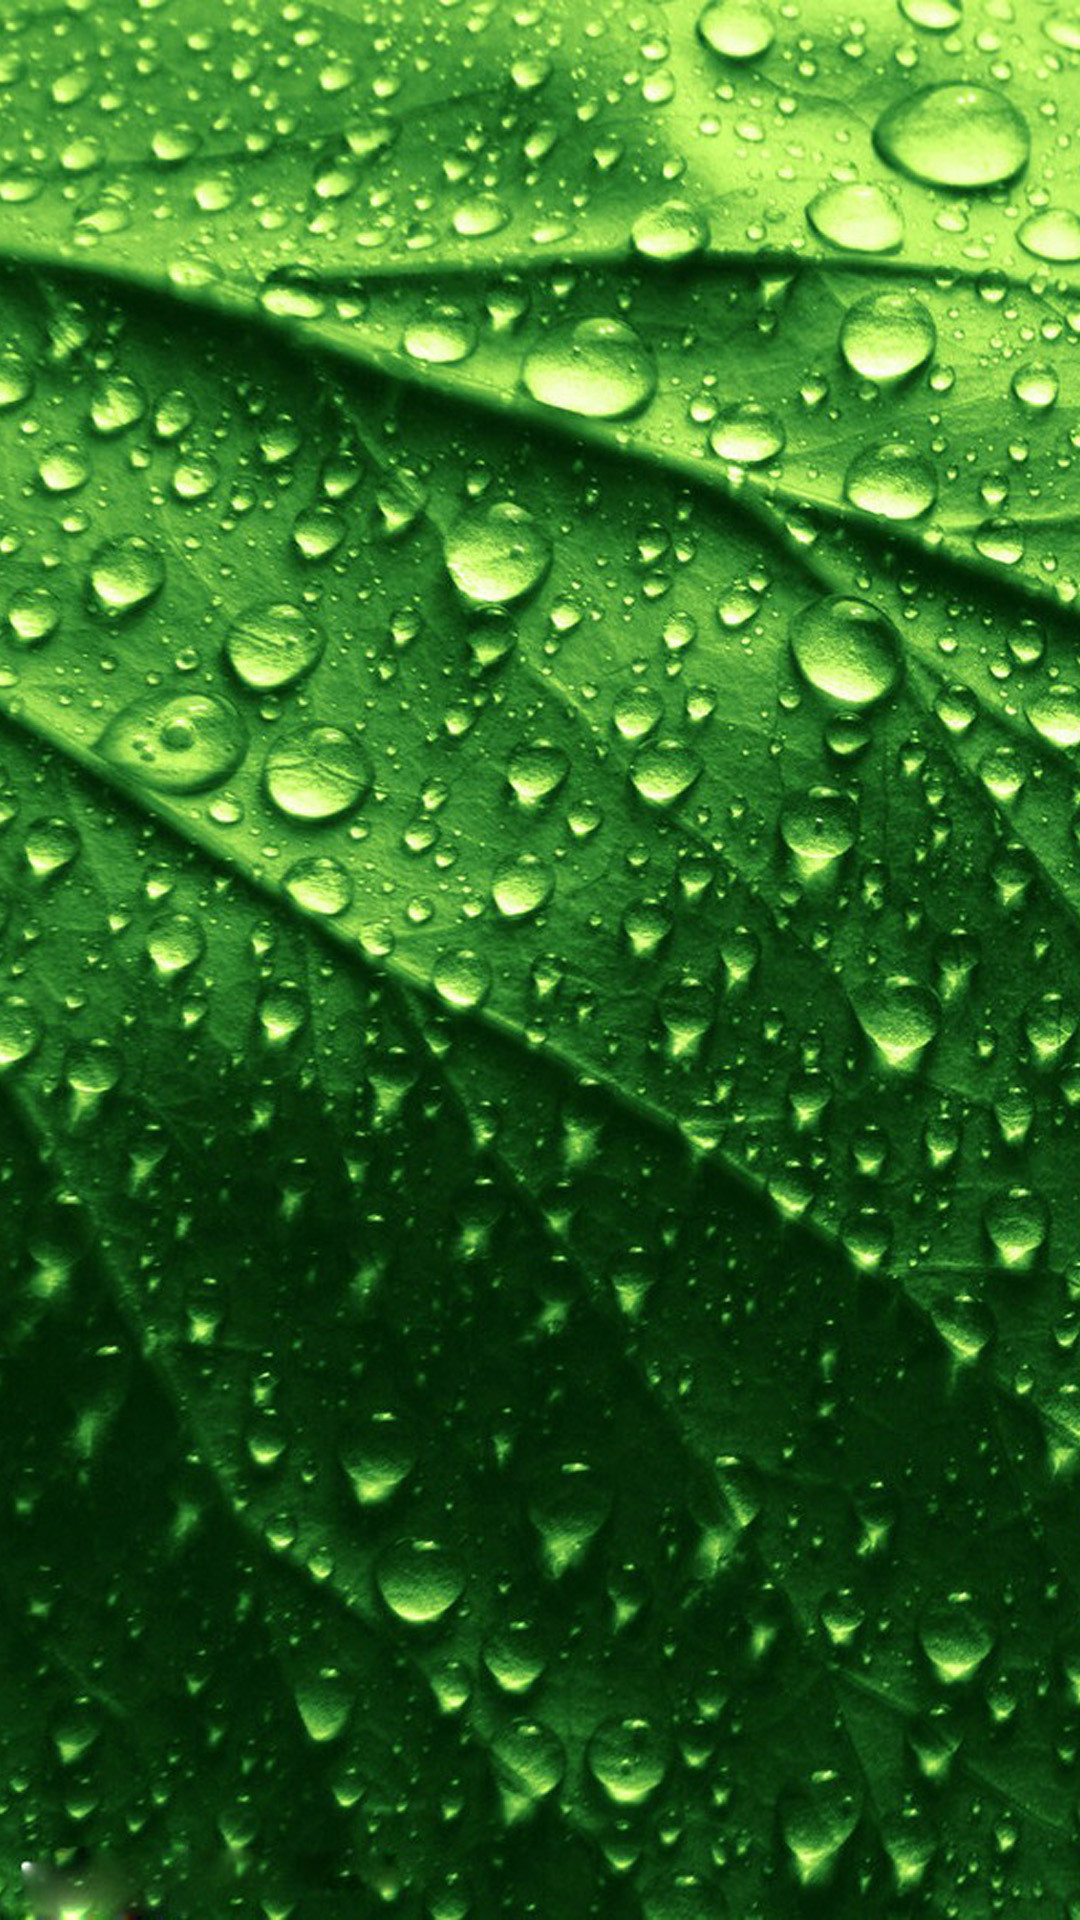 green leaf wallpaper hd